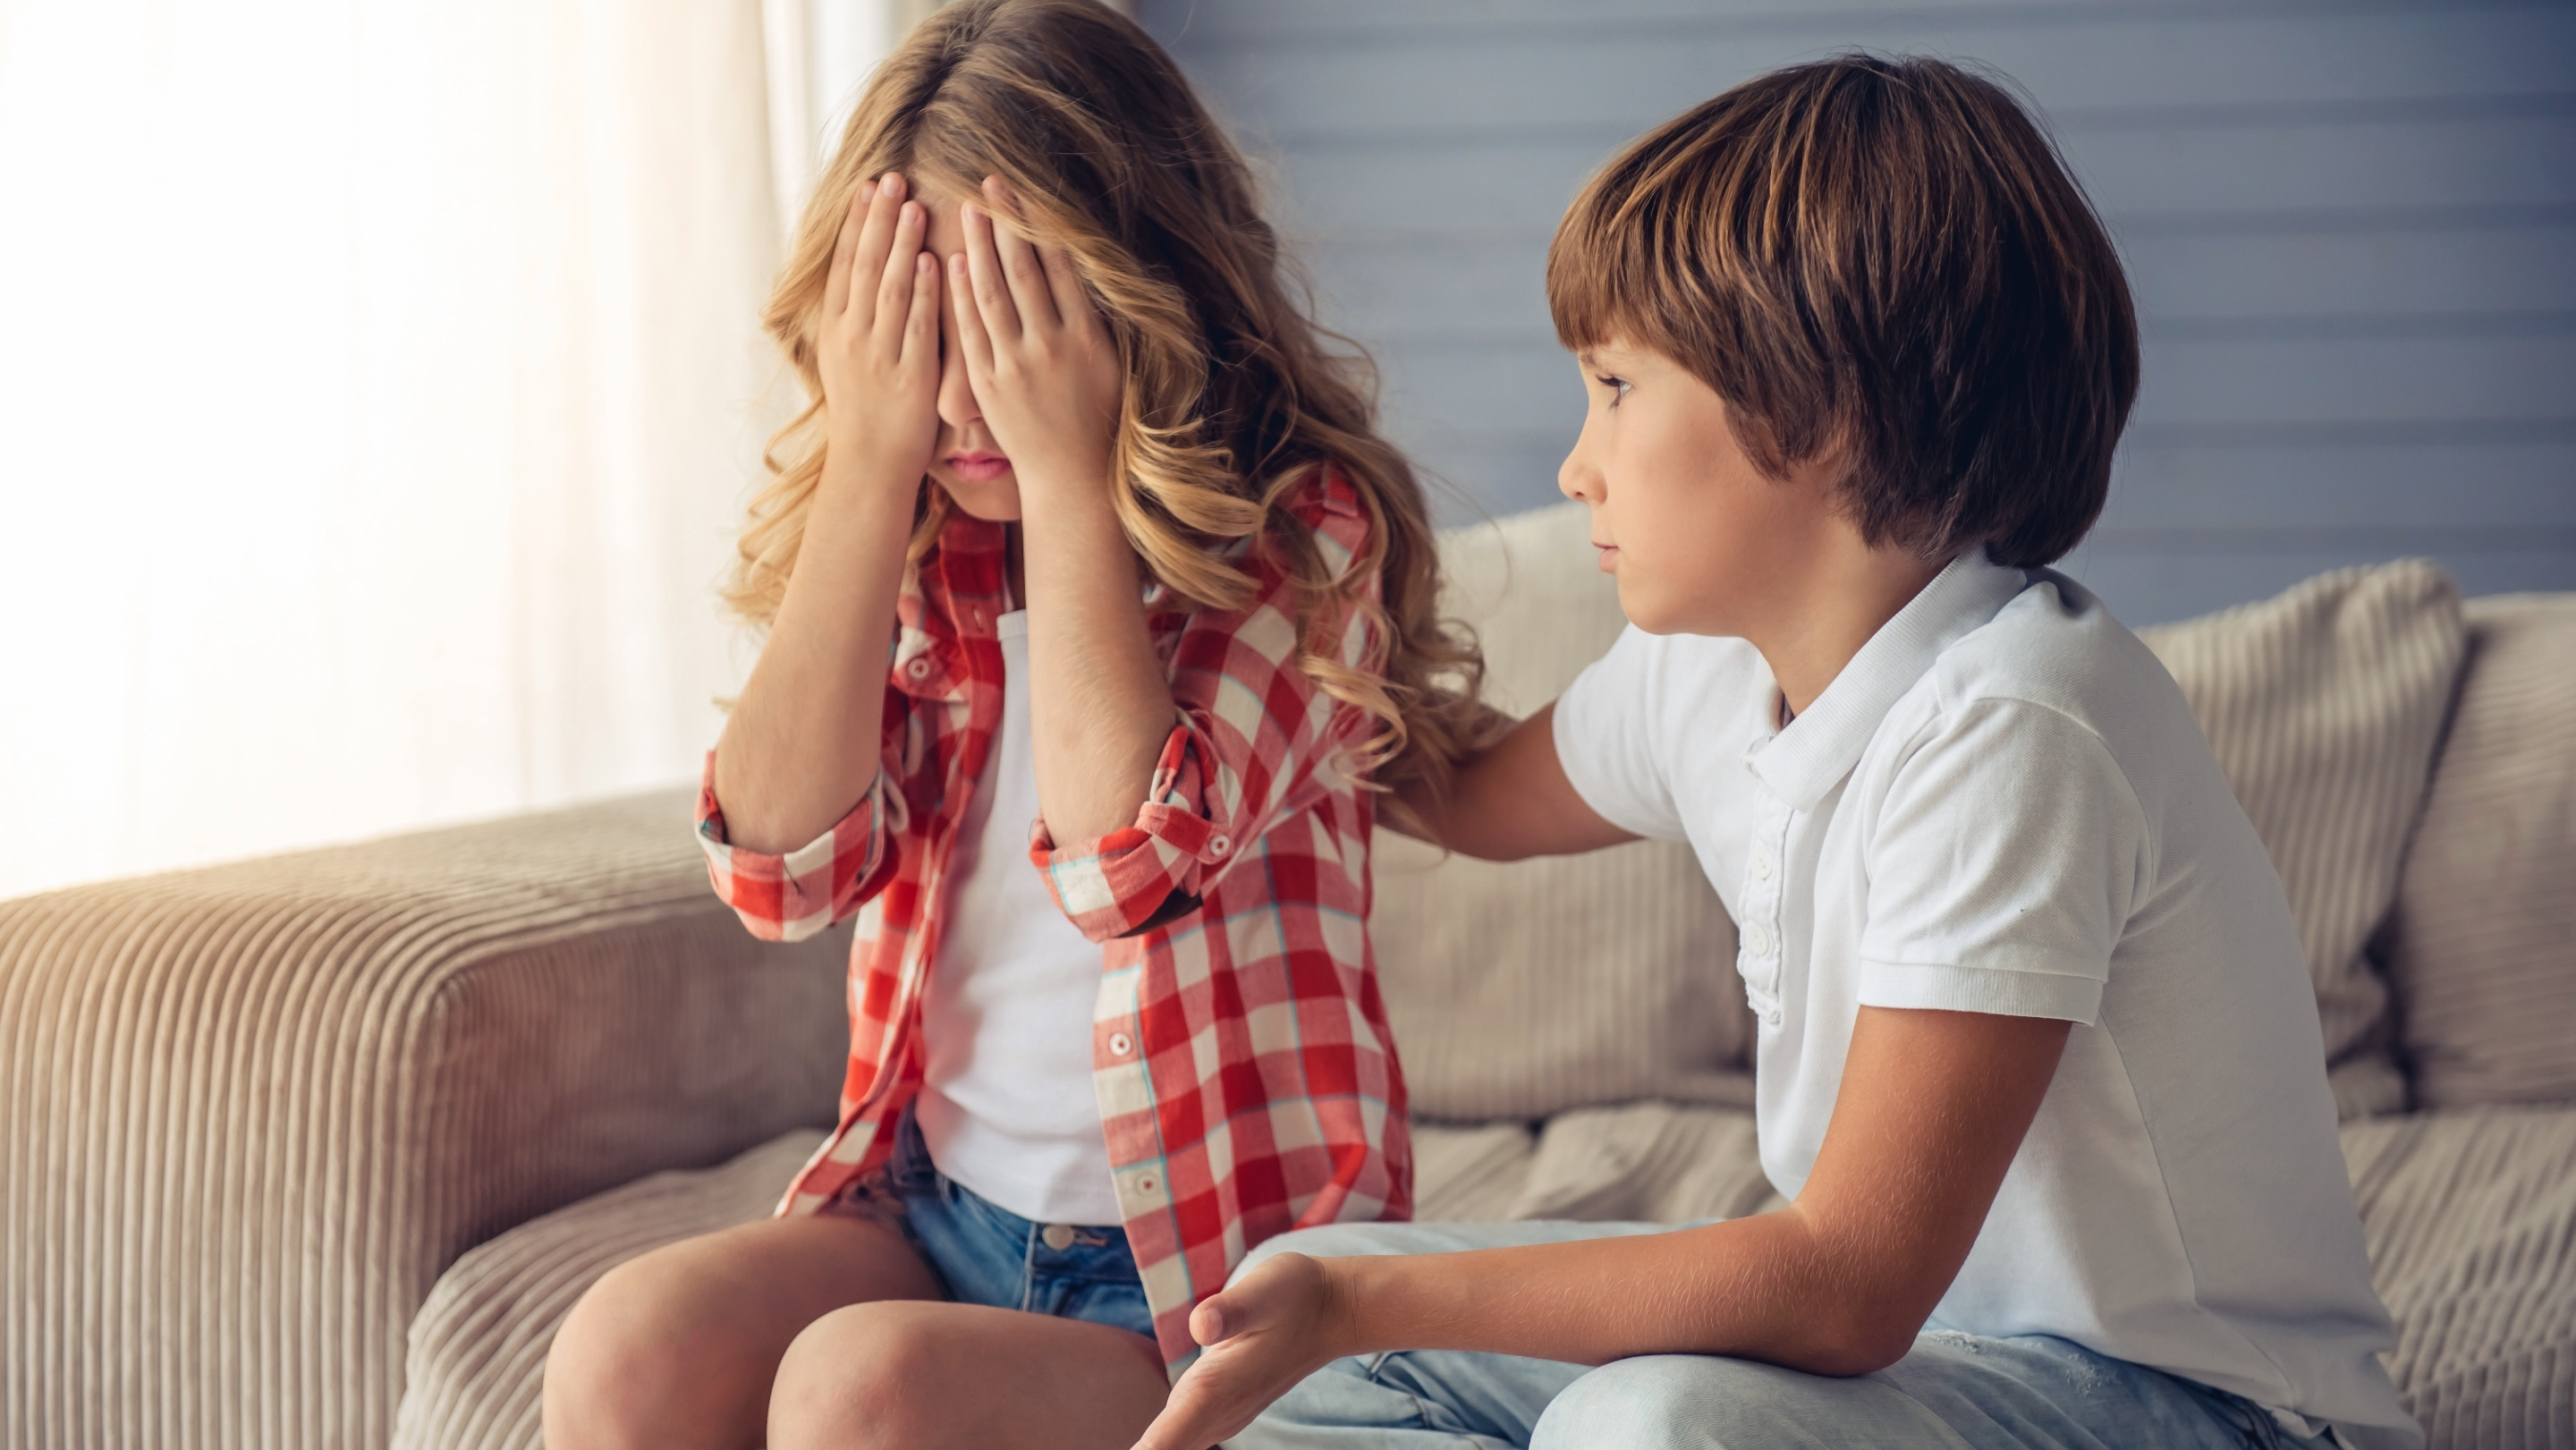 Forcing your kids to apologize can make them less  likable